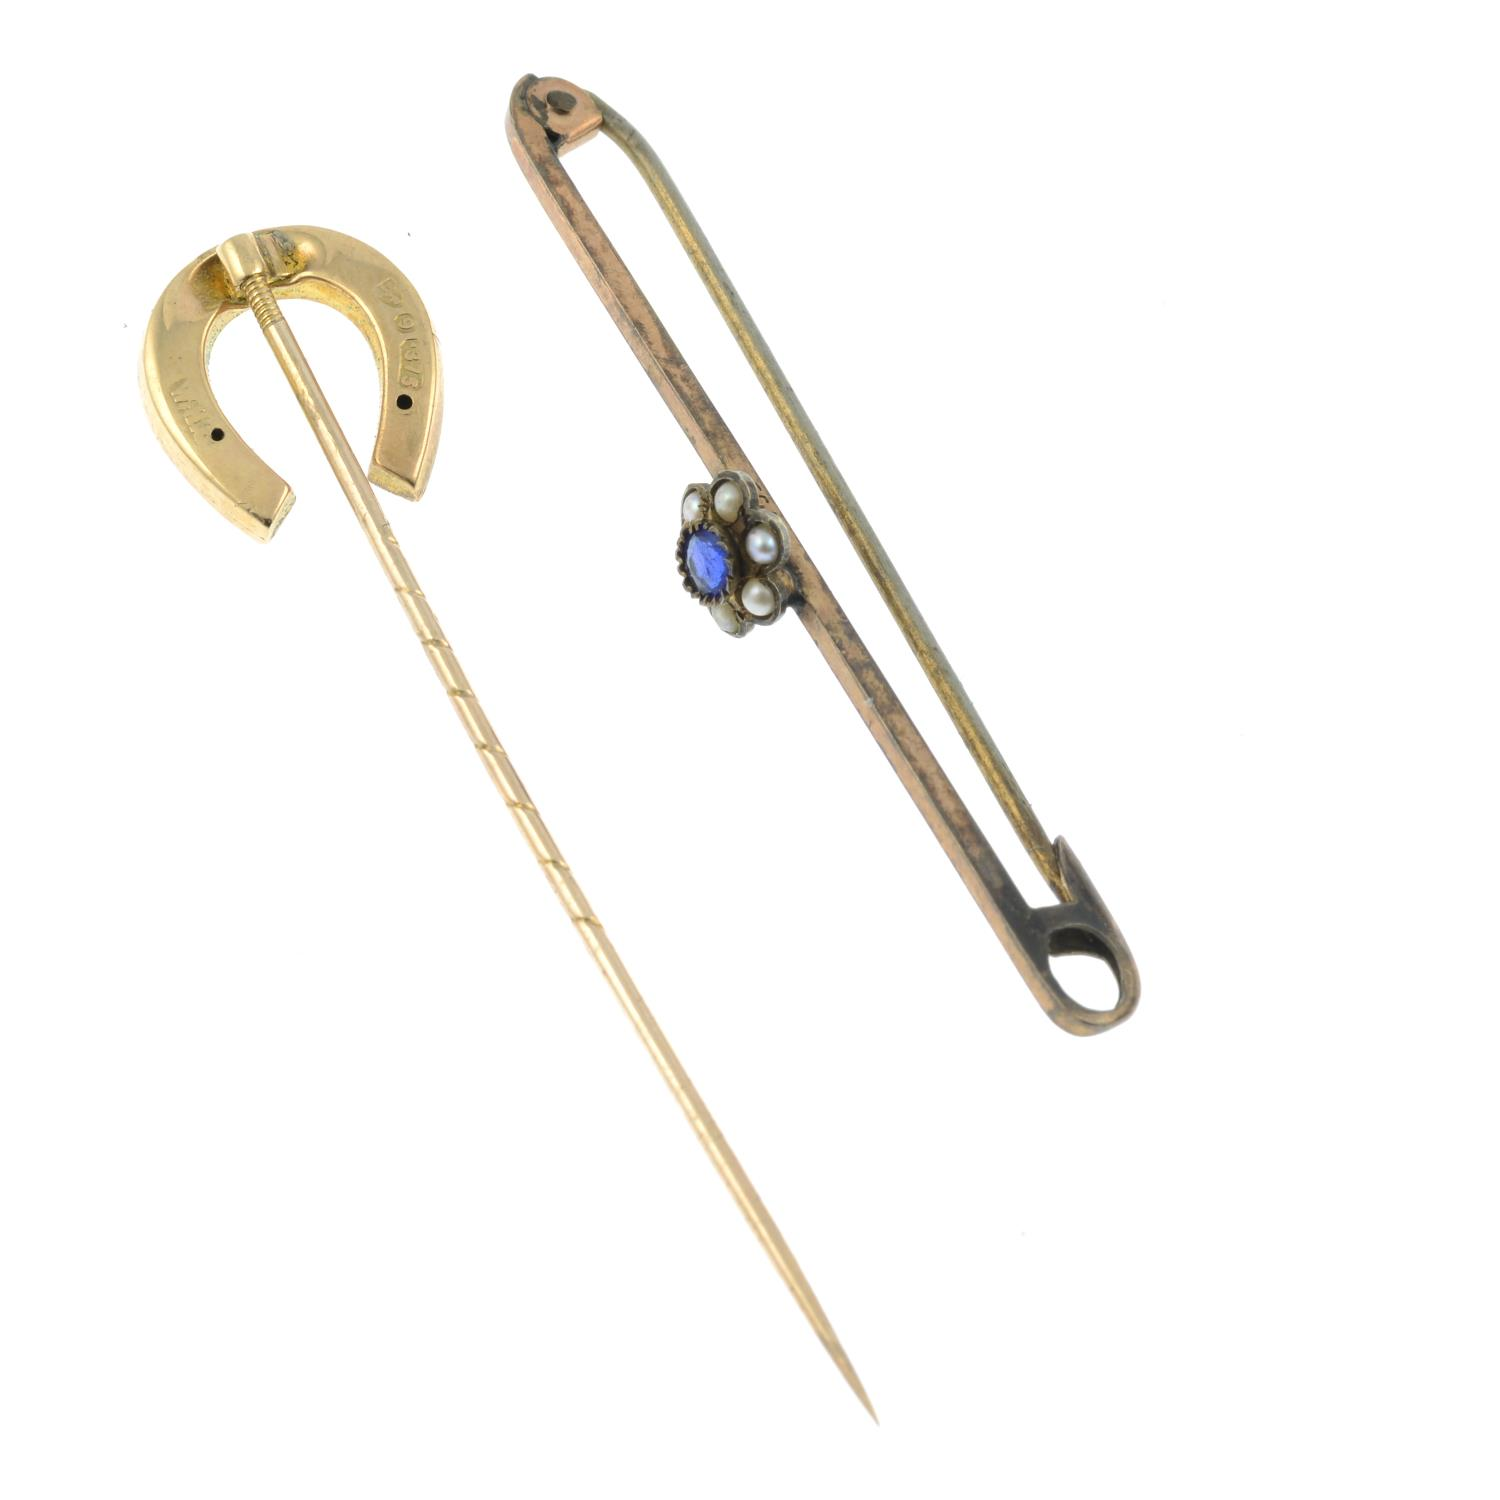 A 9ct gold paste horseshoe stickpin along with a paste a seed pearl bar brooch. - Image 2 of 2